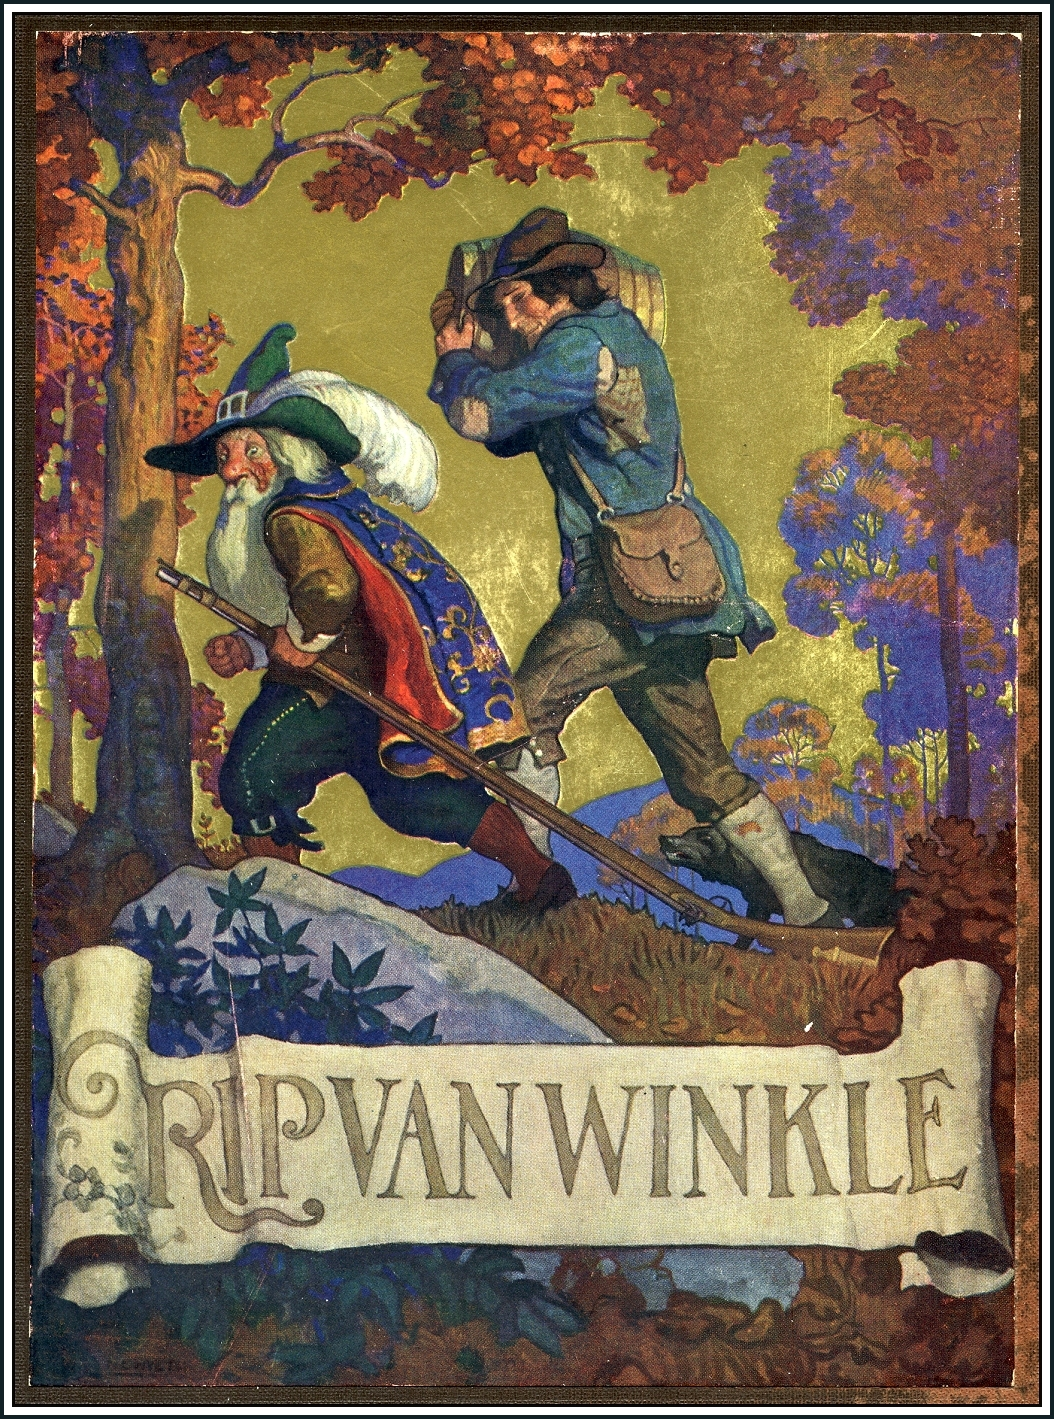 rip van winkle by washington irving The first installment, containing rip van winkle, was an enormous success the life of washington irving 2 vols (oxford university press, 1935.